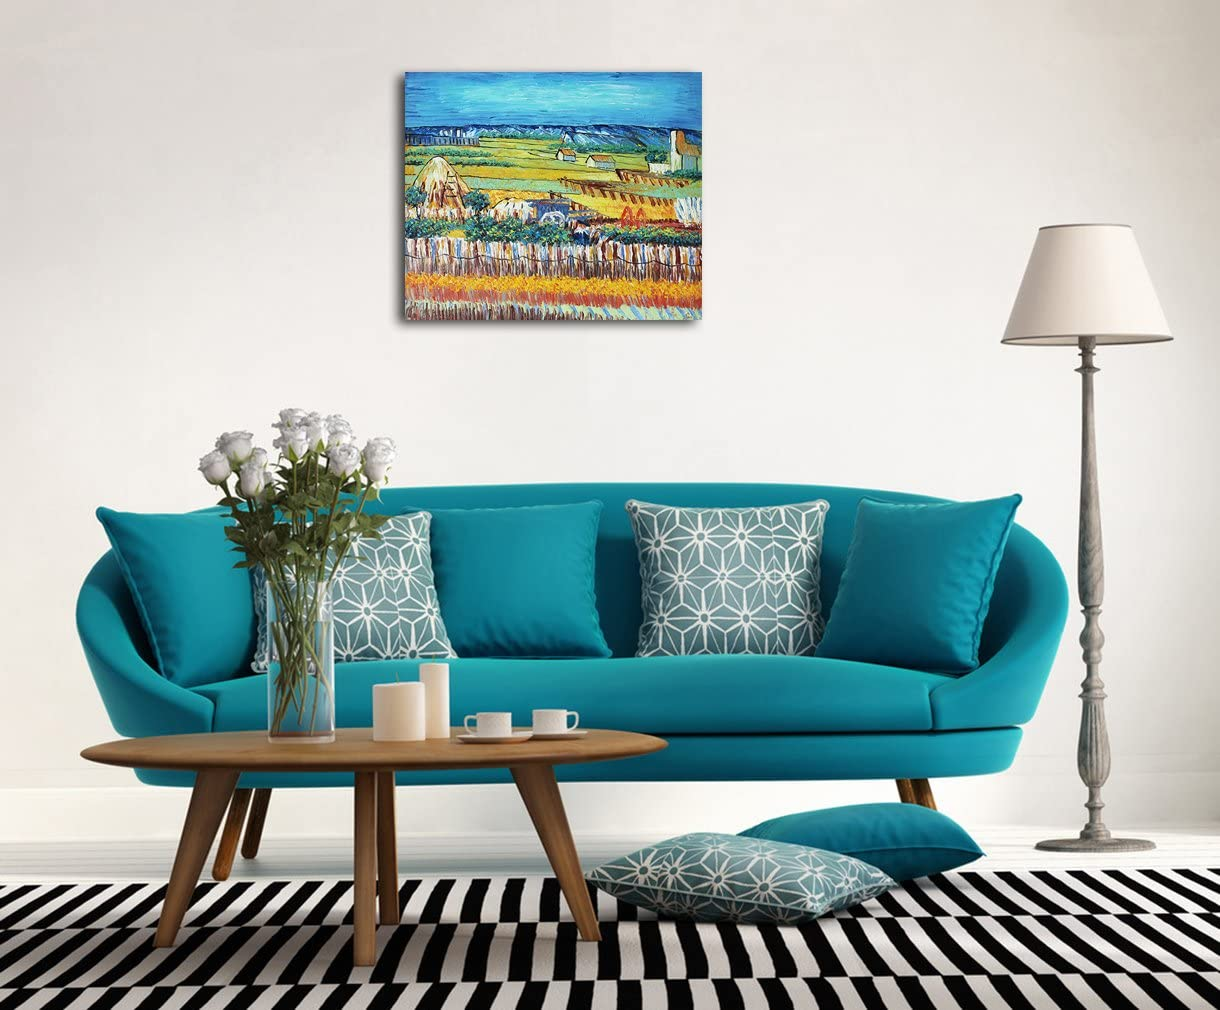 Muzagroo Art Van Gogh Painting Harvest in The Pastoral Hand Painted on Canvas Decor for Living Room Ready to Hang 20x24in